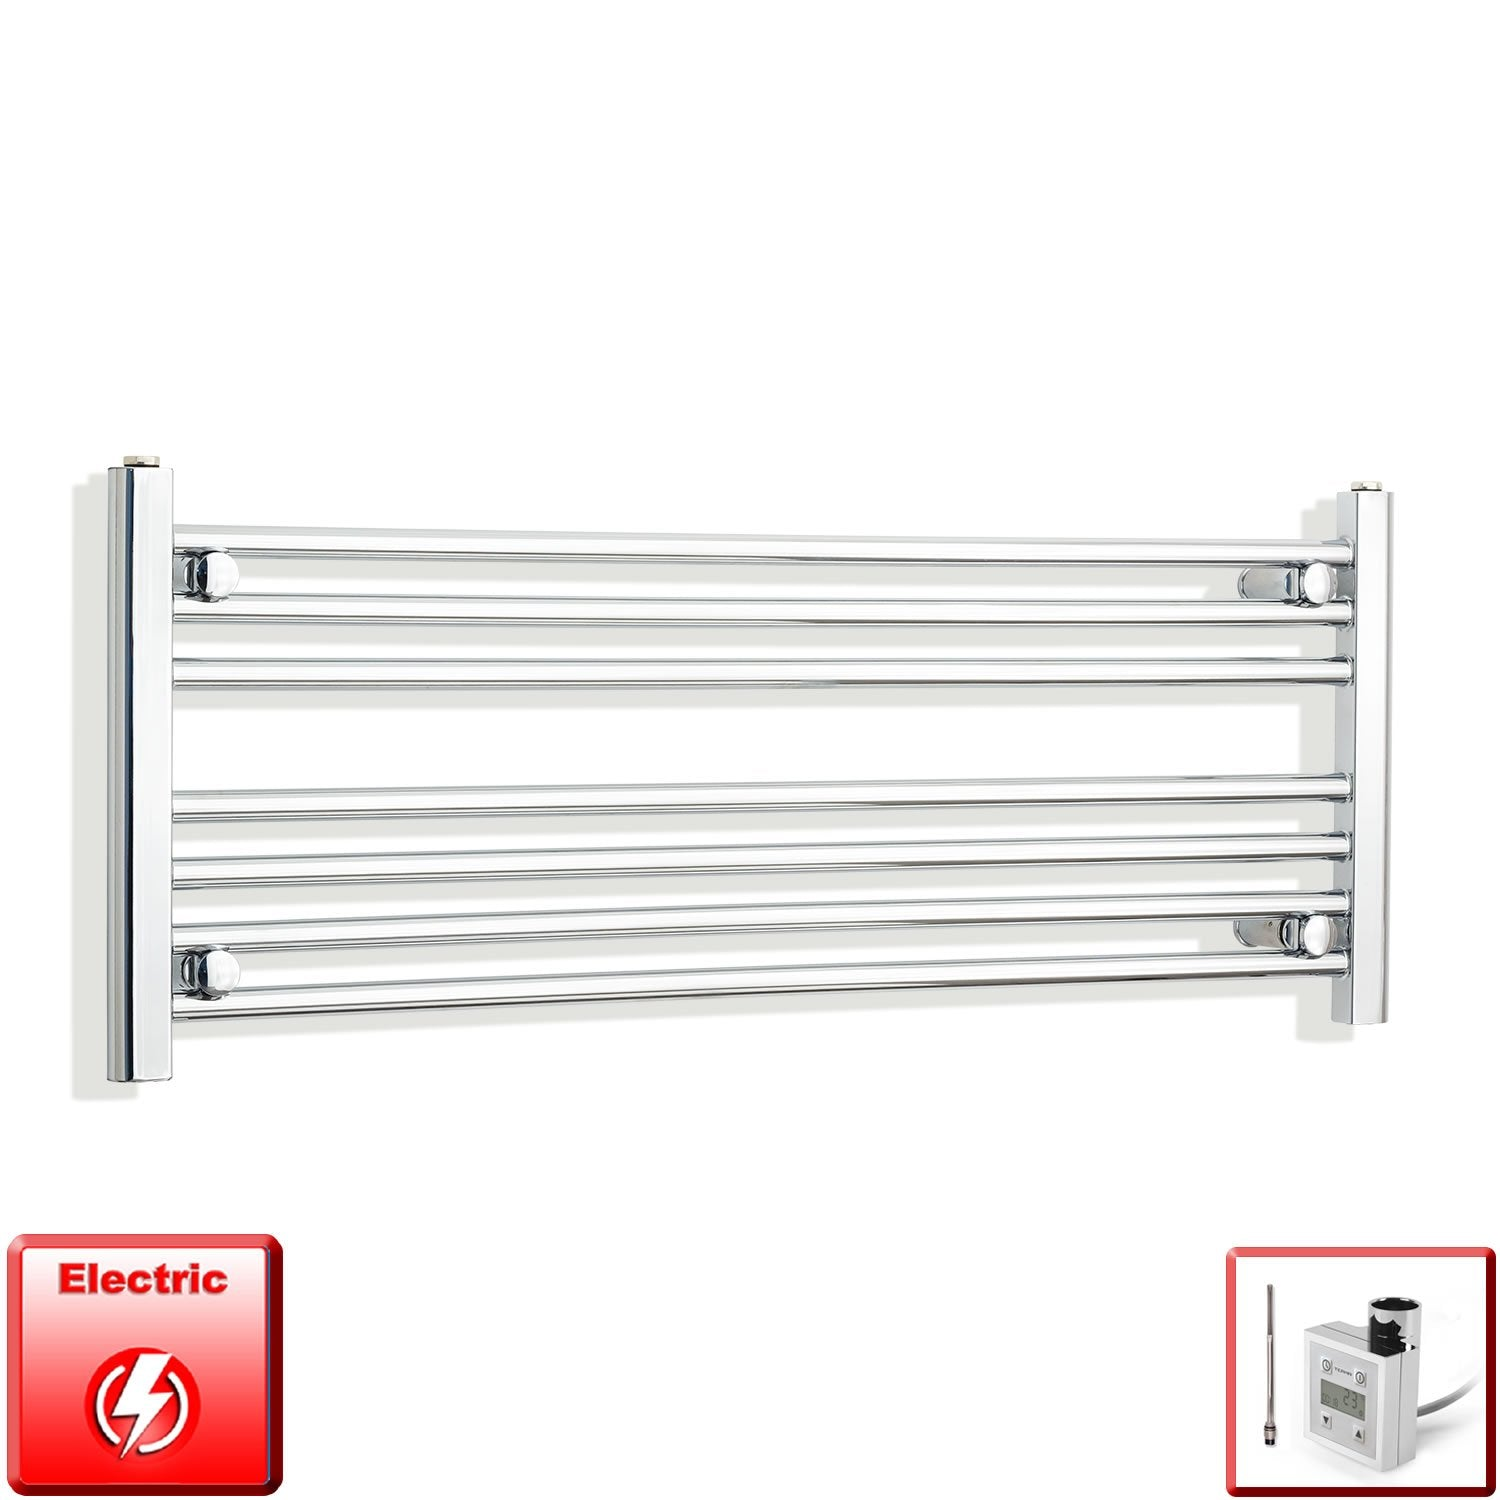 1100mm Wide 400mm High Flat Chrome Pre-Filled Electric Heated Towel Rail Radiator HTR,KTX-3 Thermostatic Element